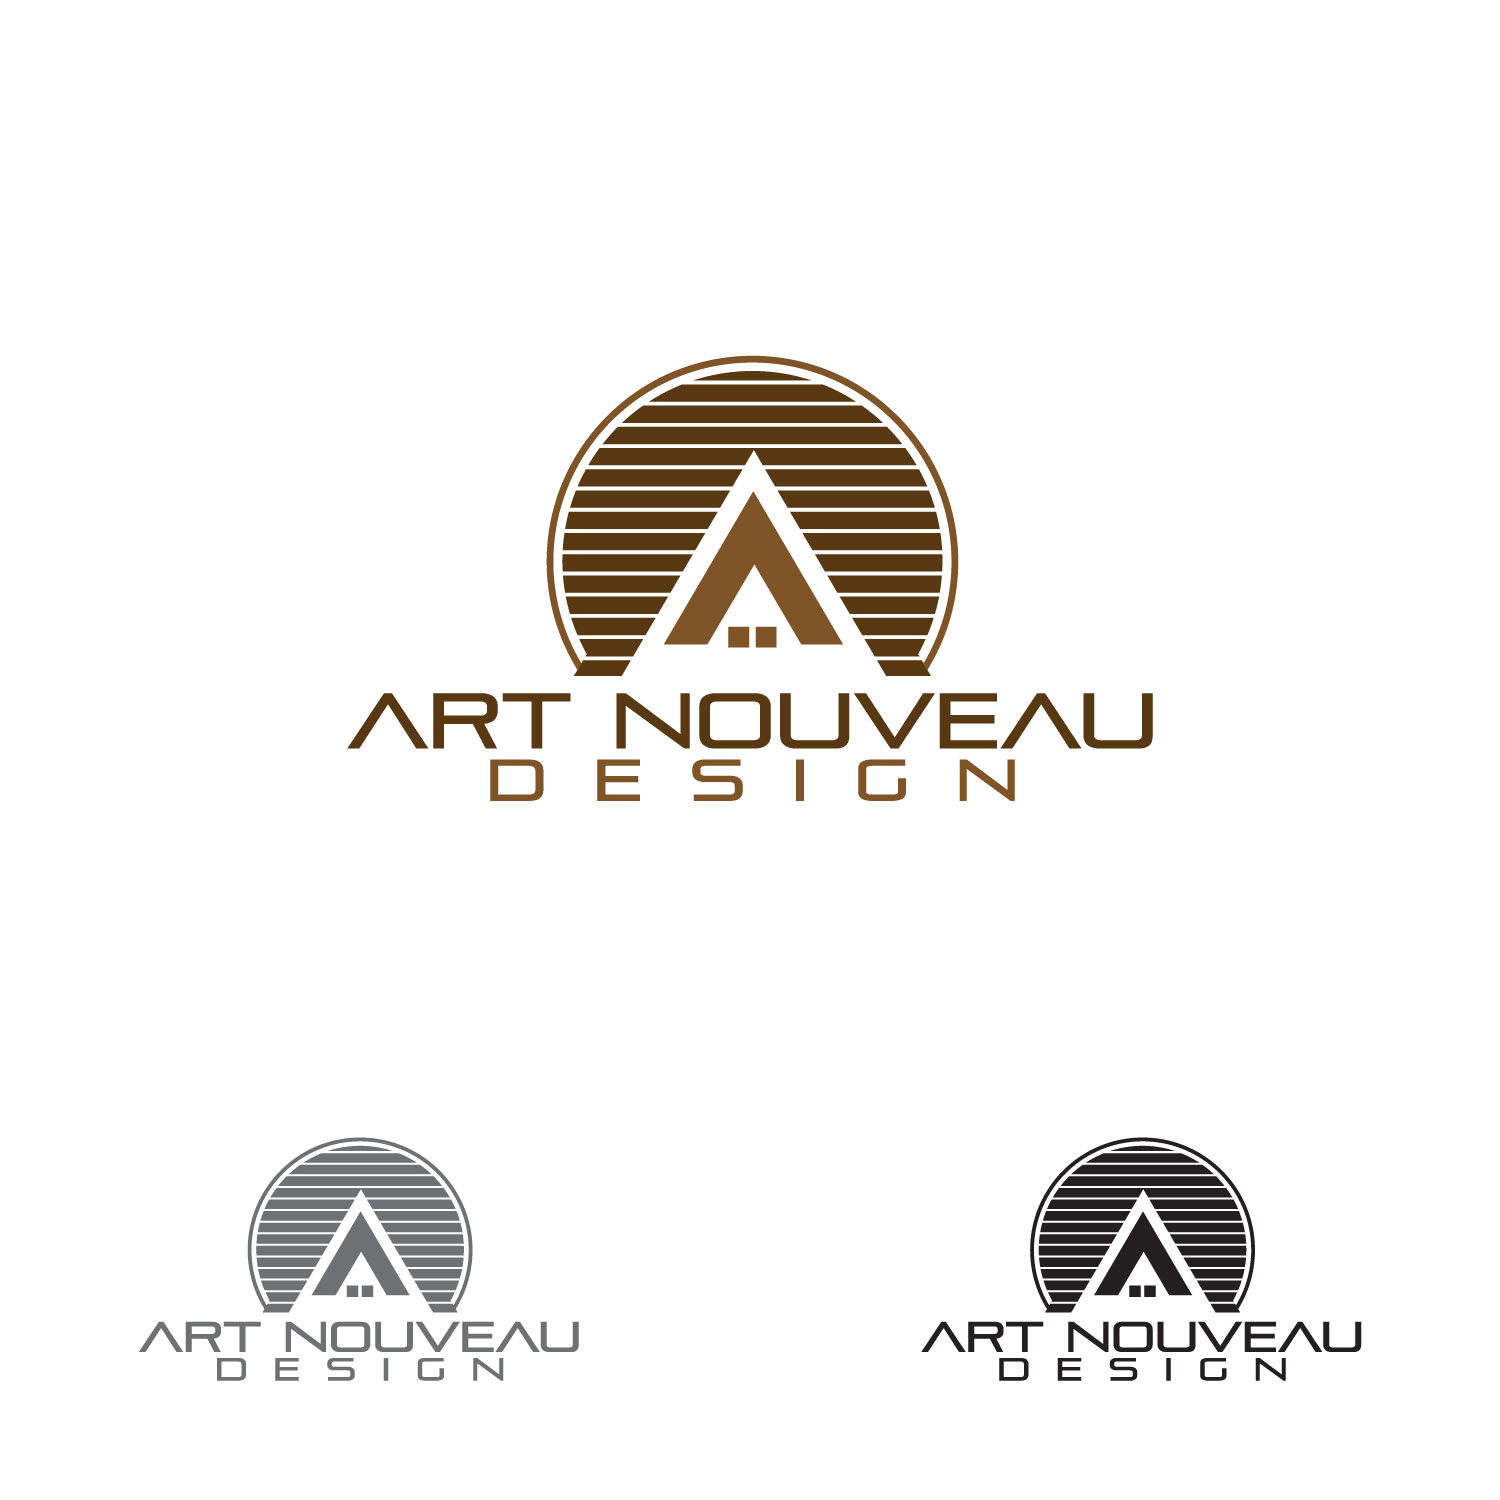 Logo Design by lagalag - Entry No. 48 in the Logo Design Contest Artistic Logo Design for Art Nouveau Design.